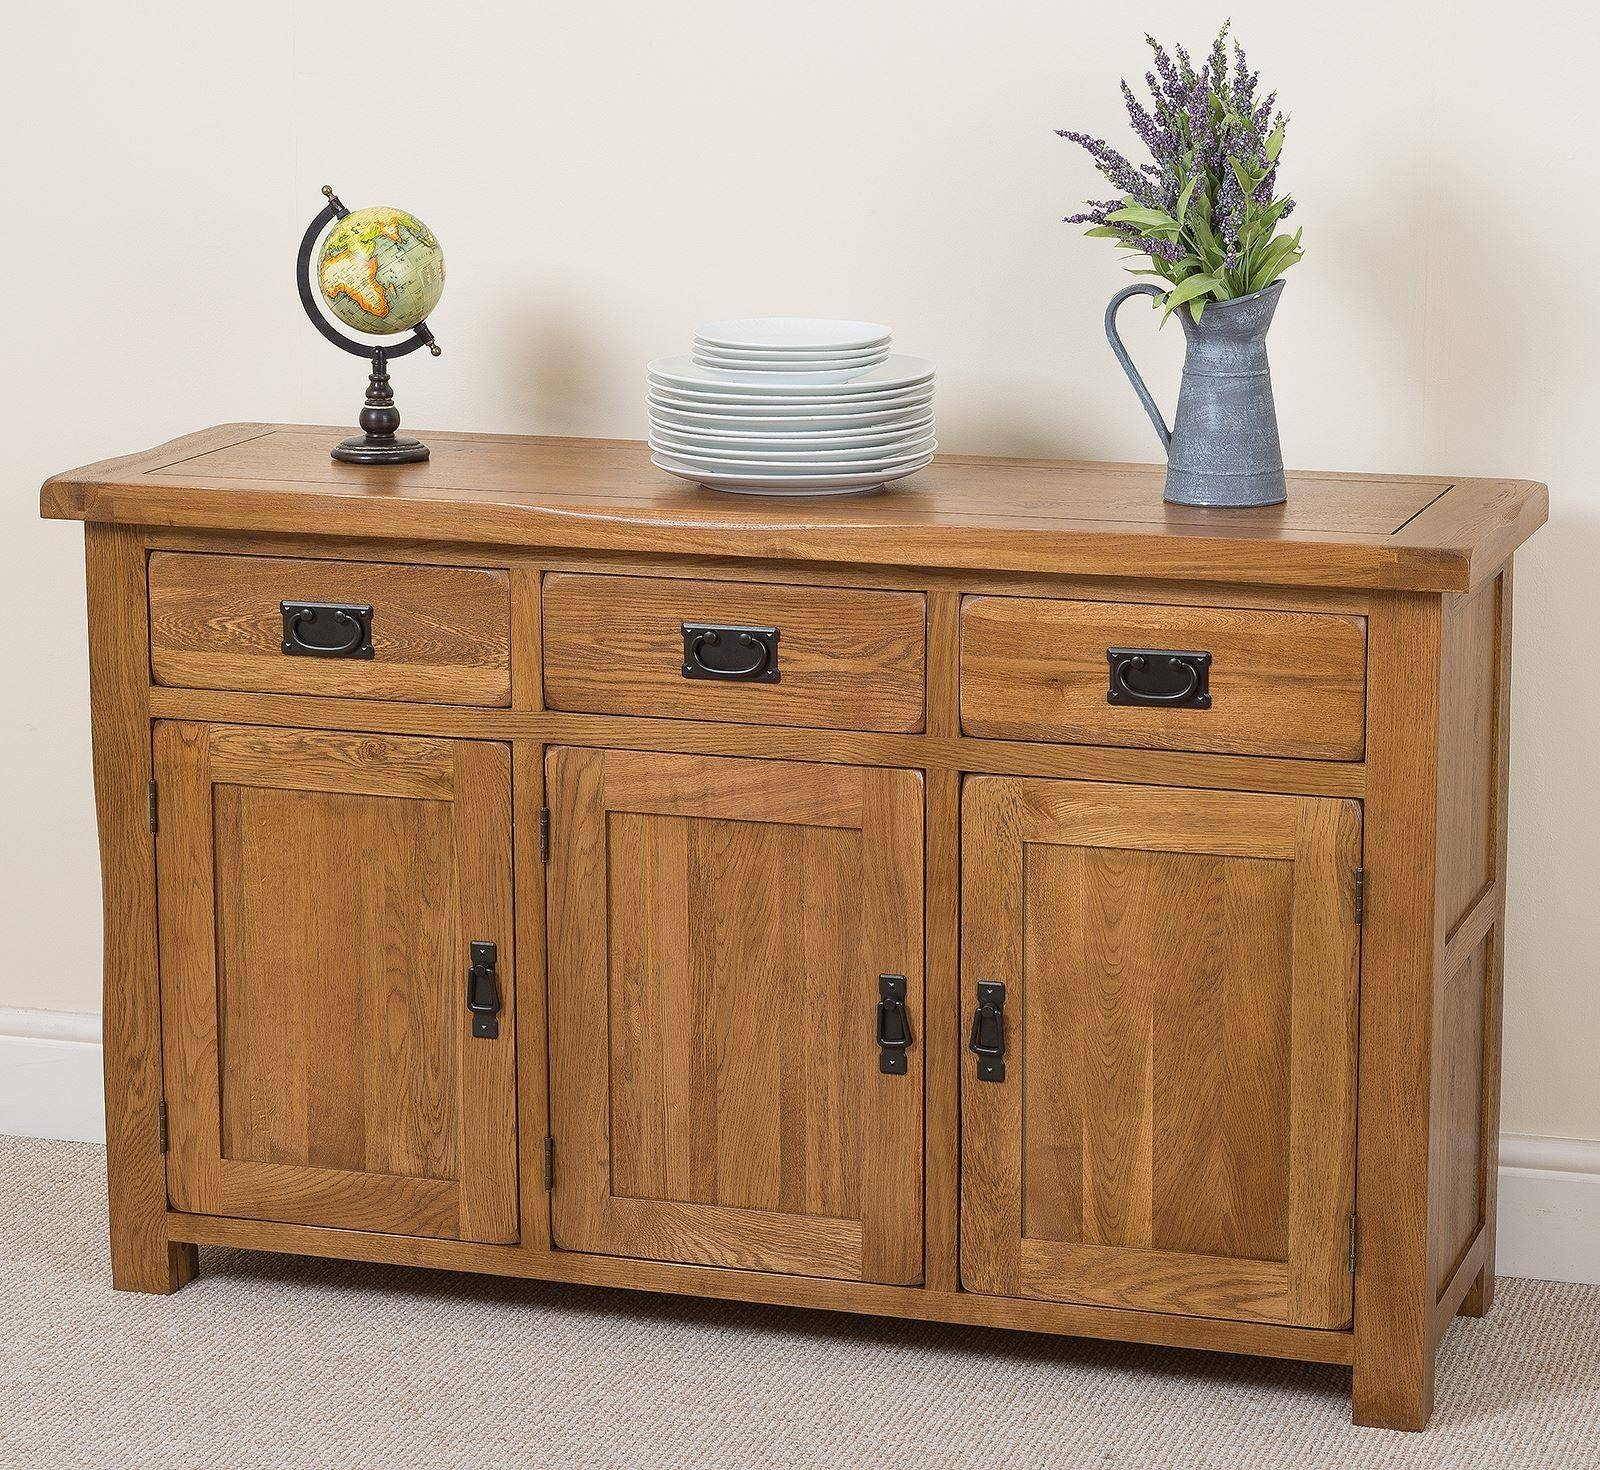 Cotswold Large Oak Sideboard | Free Uk Delivery With Regard To Current Solid Oak Sideboards (#4 of 15)